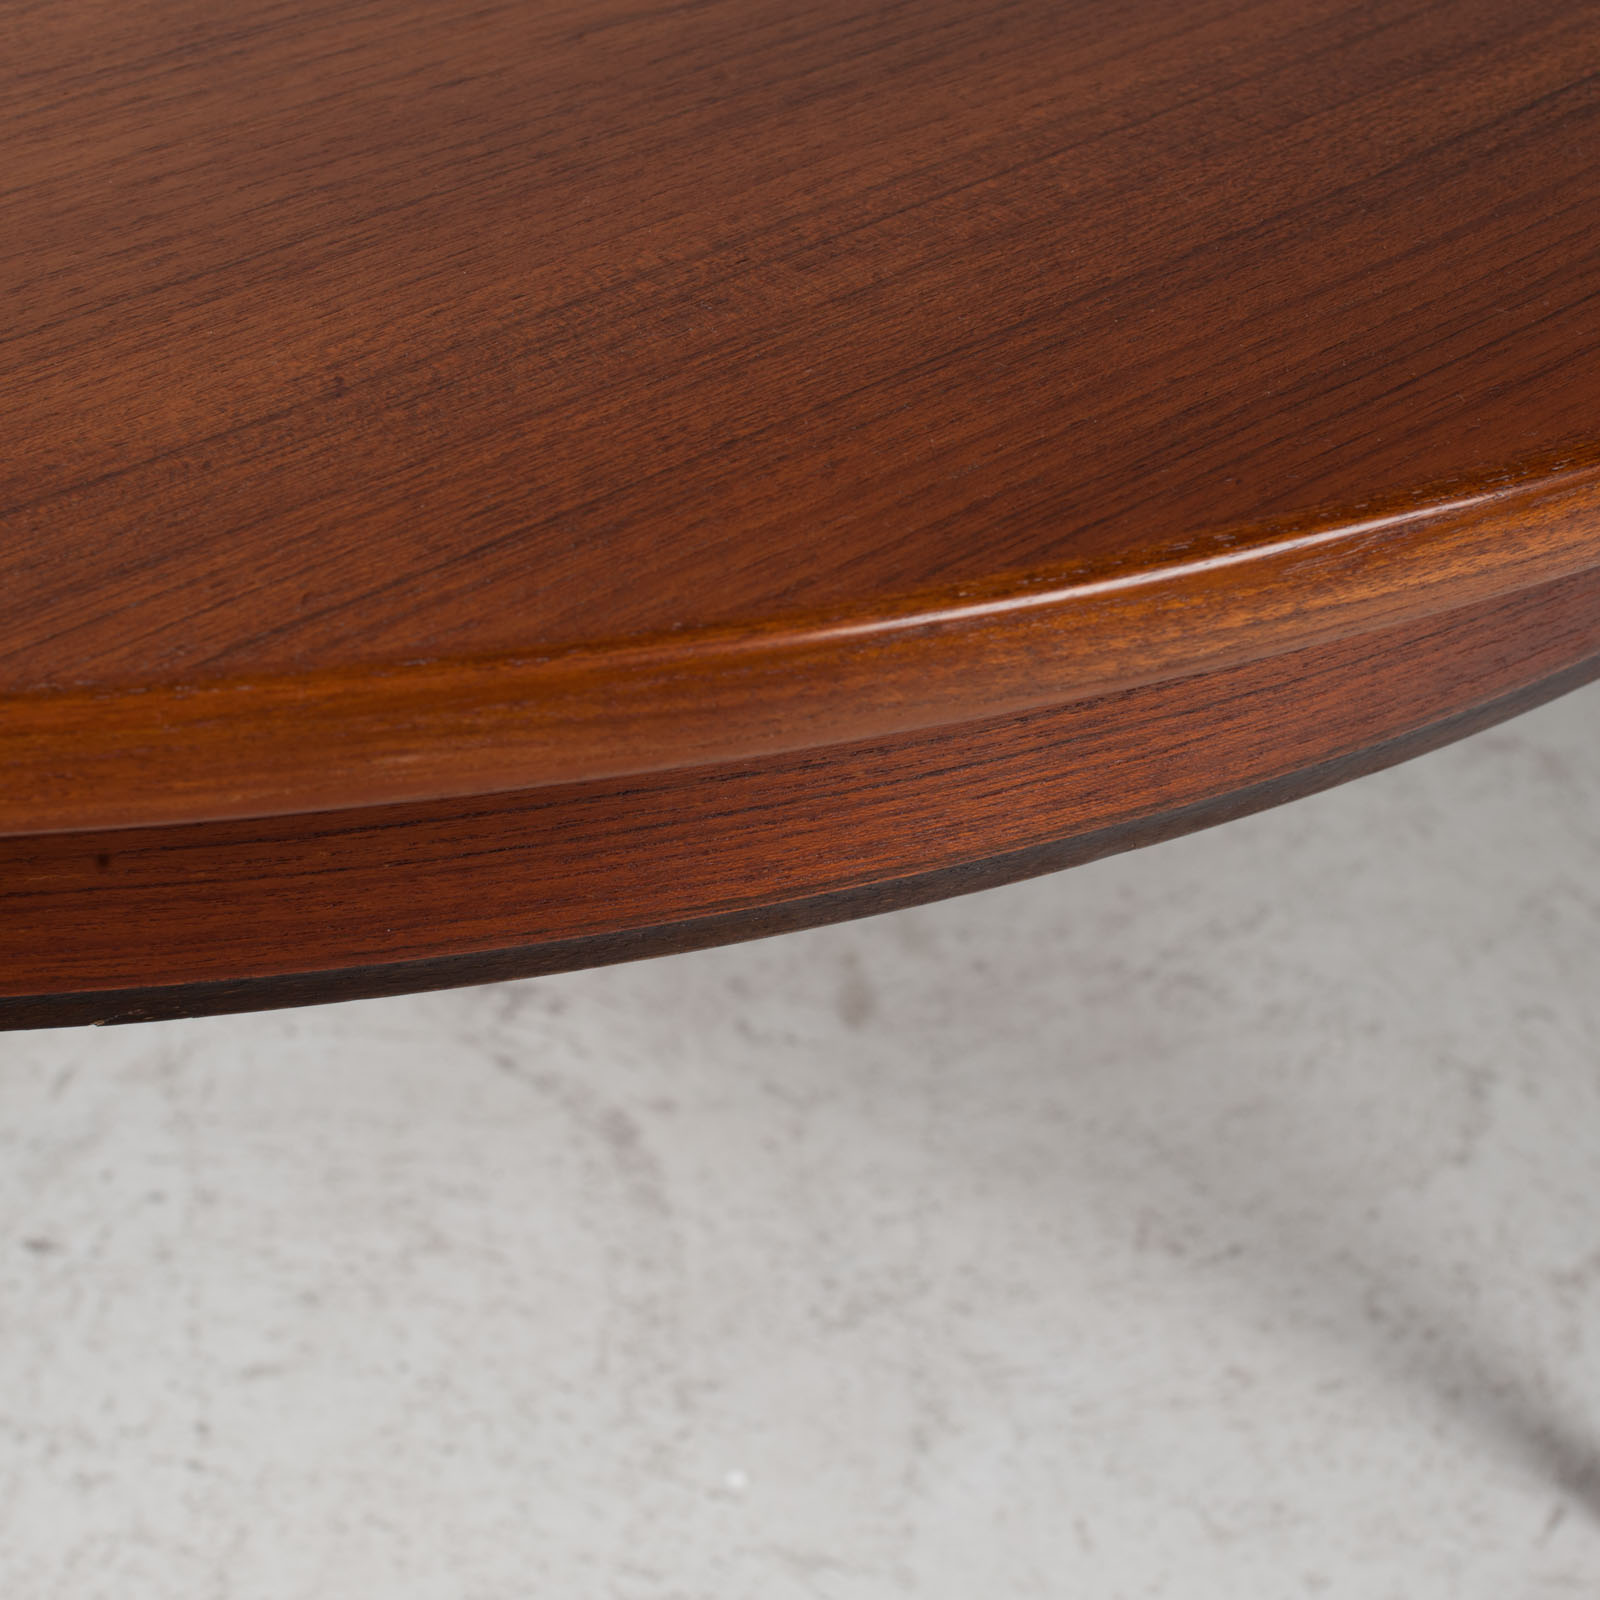 Round Dining Table By Omann Jun In Teak With Three Extensions 1960s Denmark 07